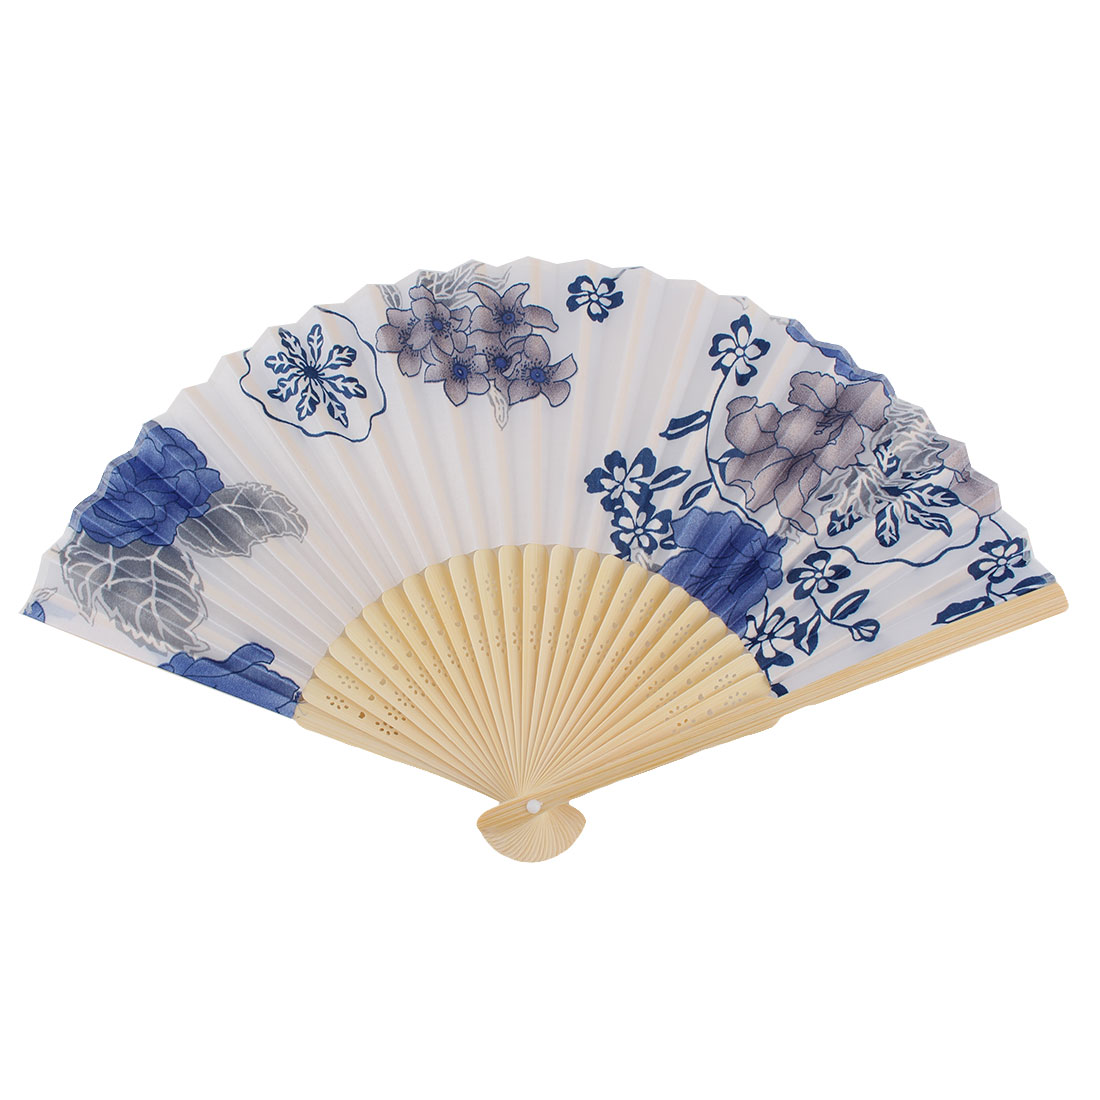 Lady Wooden Ribs Flower Pattern Chinese Style Folding Handheld Fan White Blue